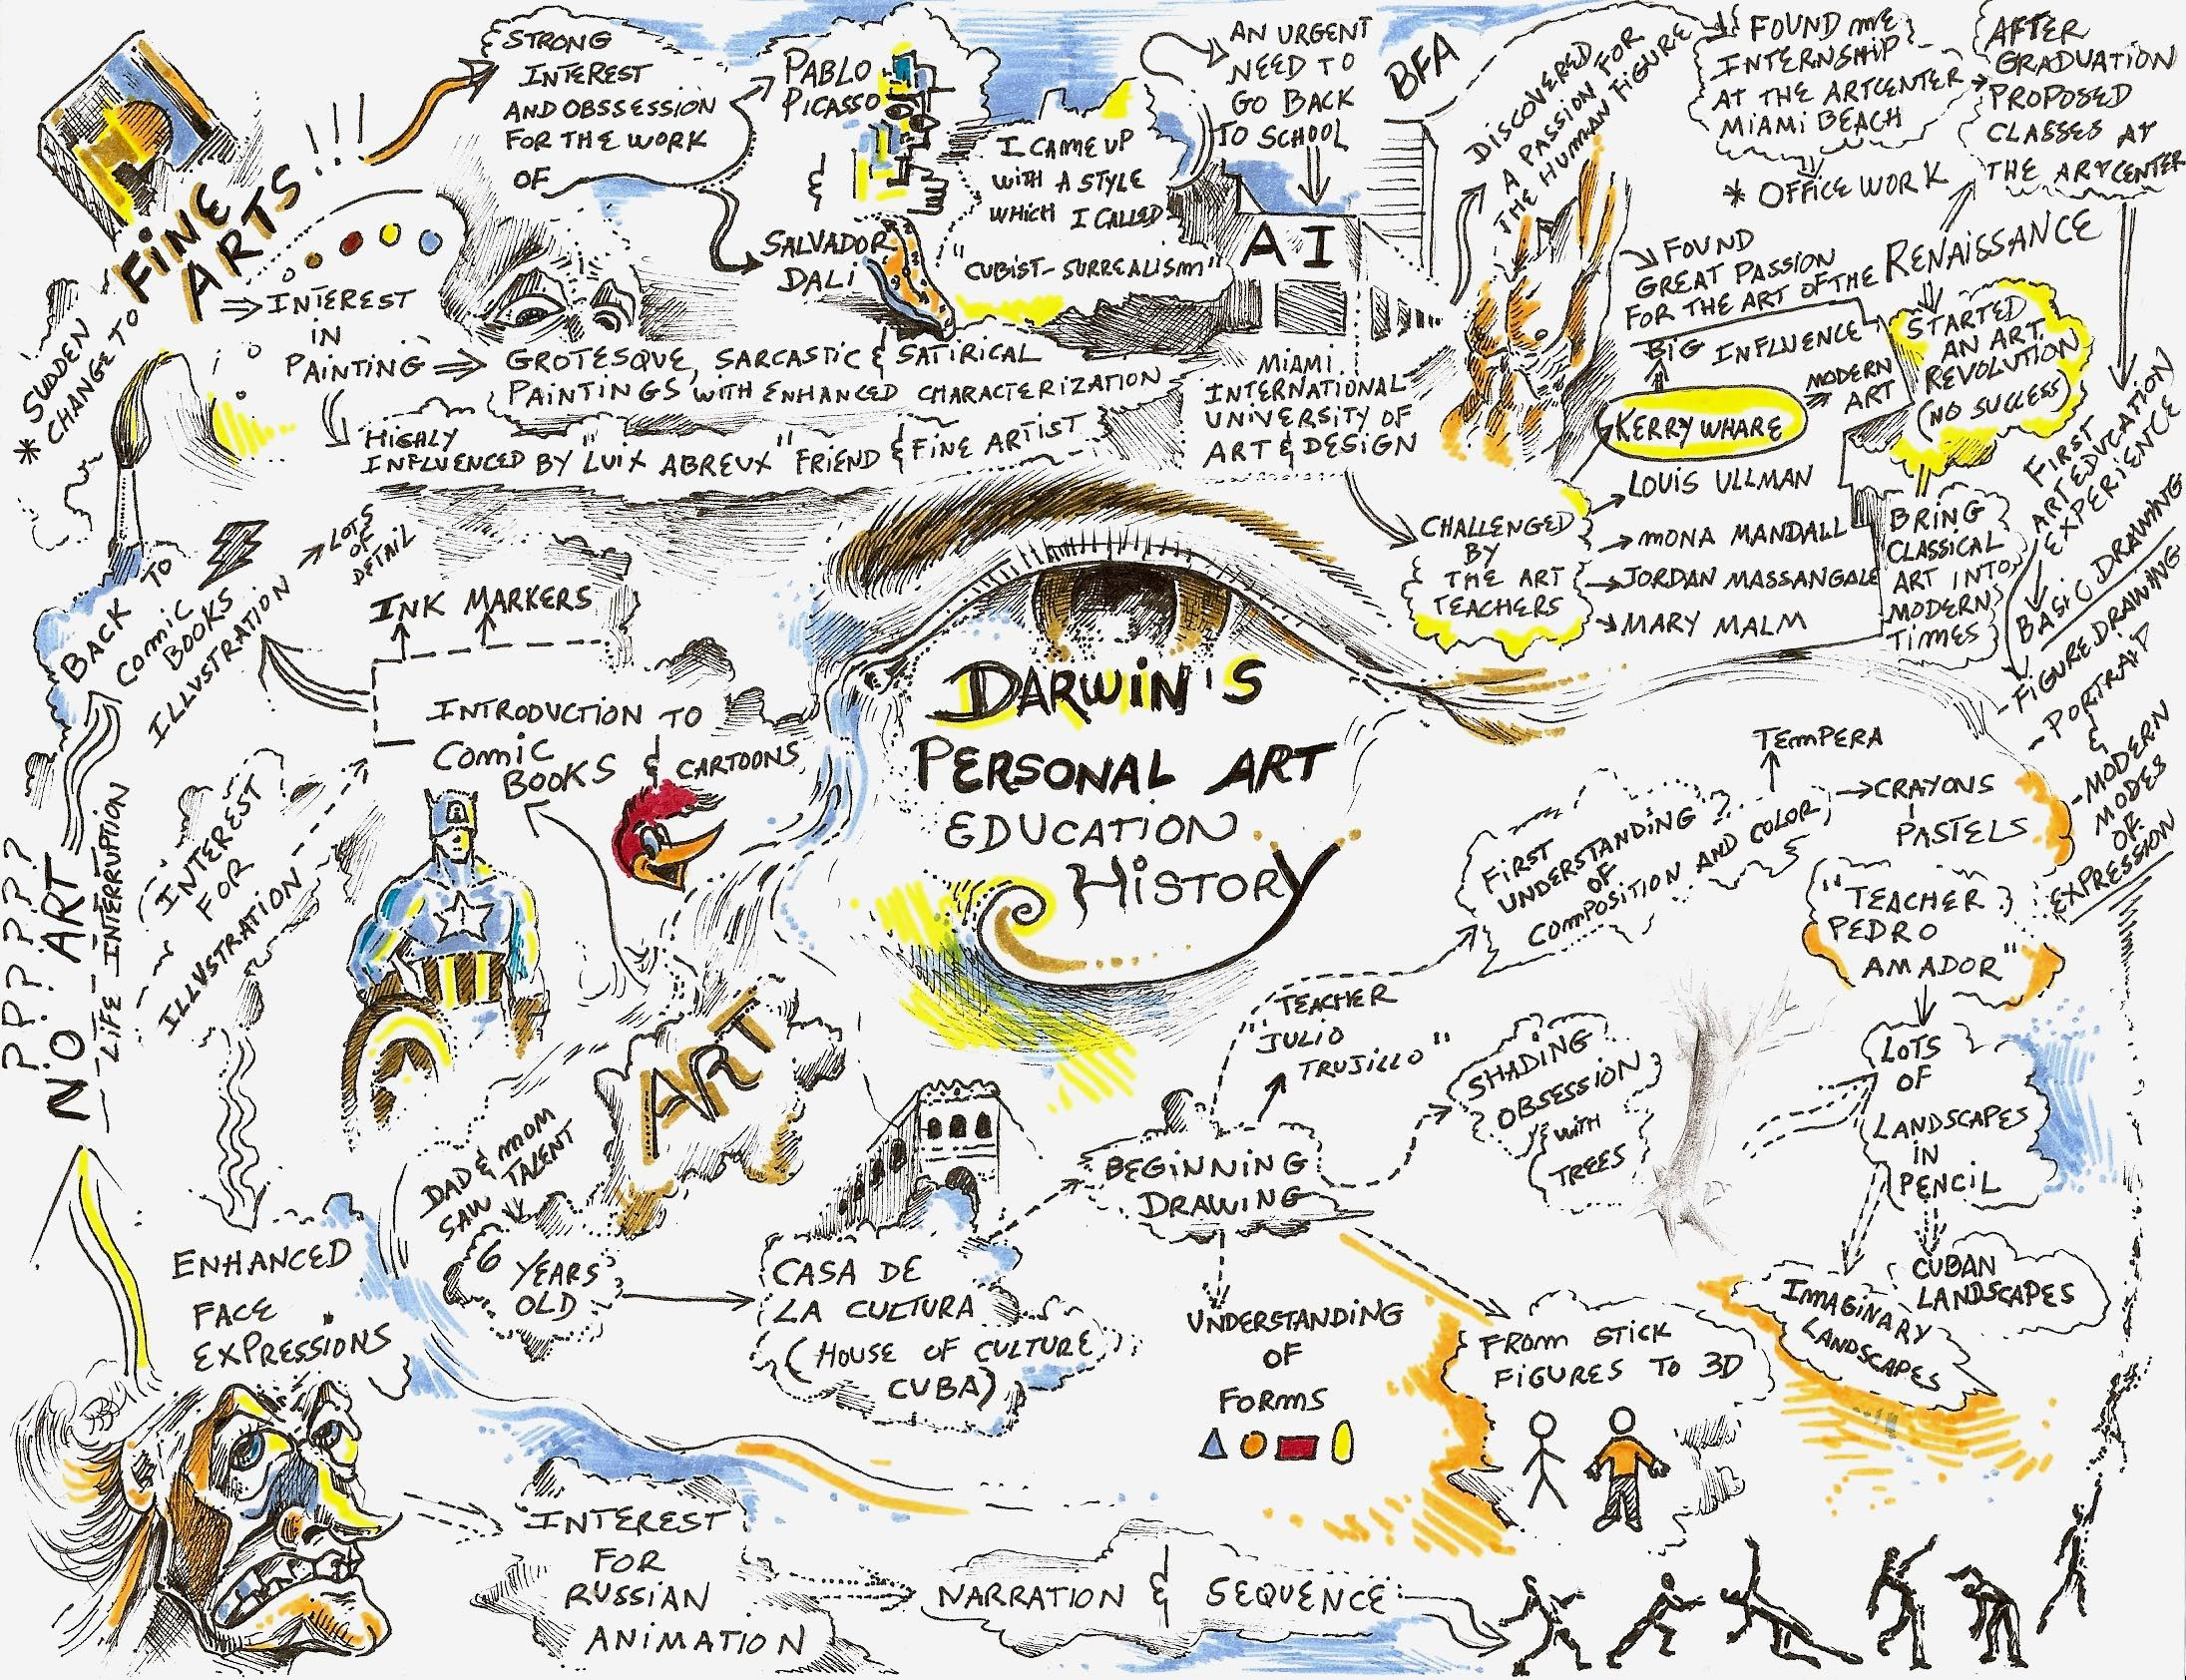 A Personal Art Education History Visual Note Taking